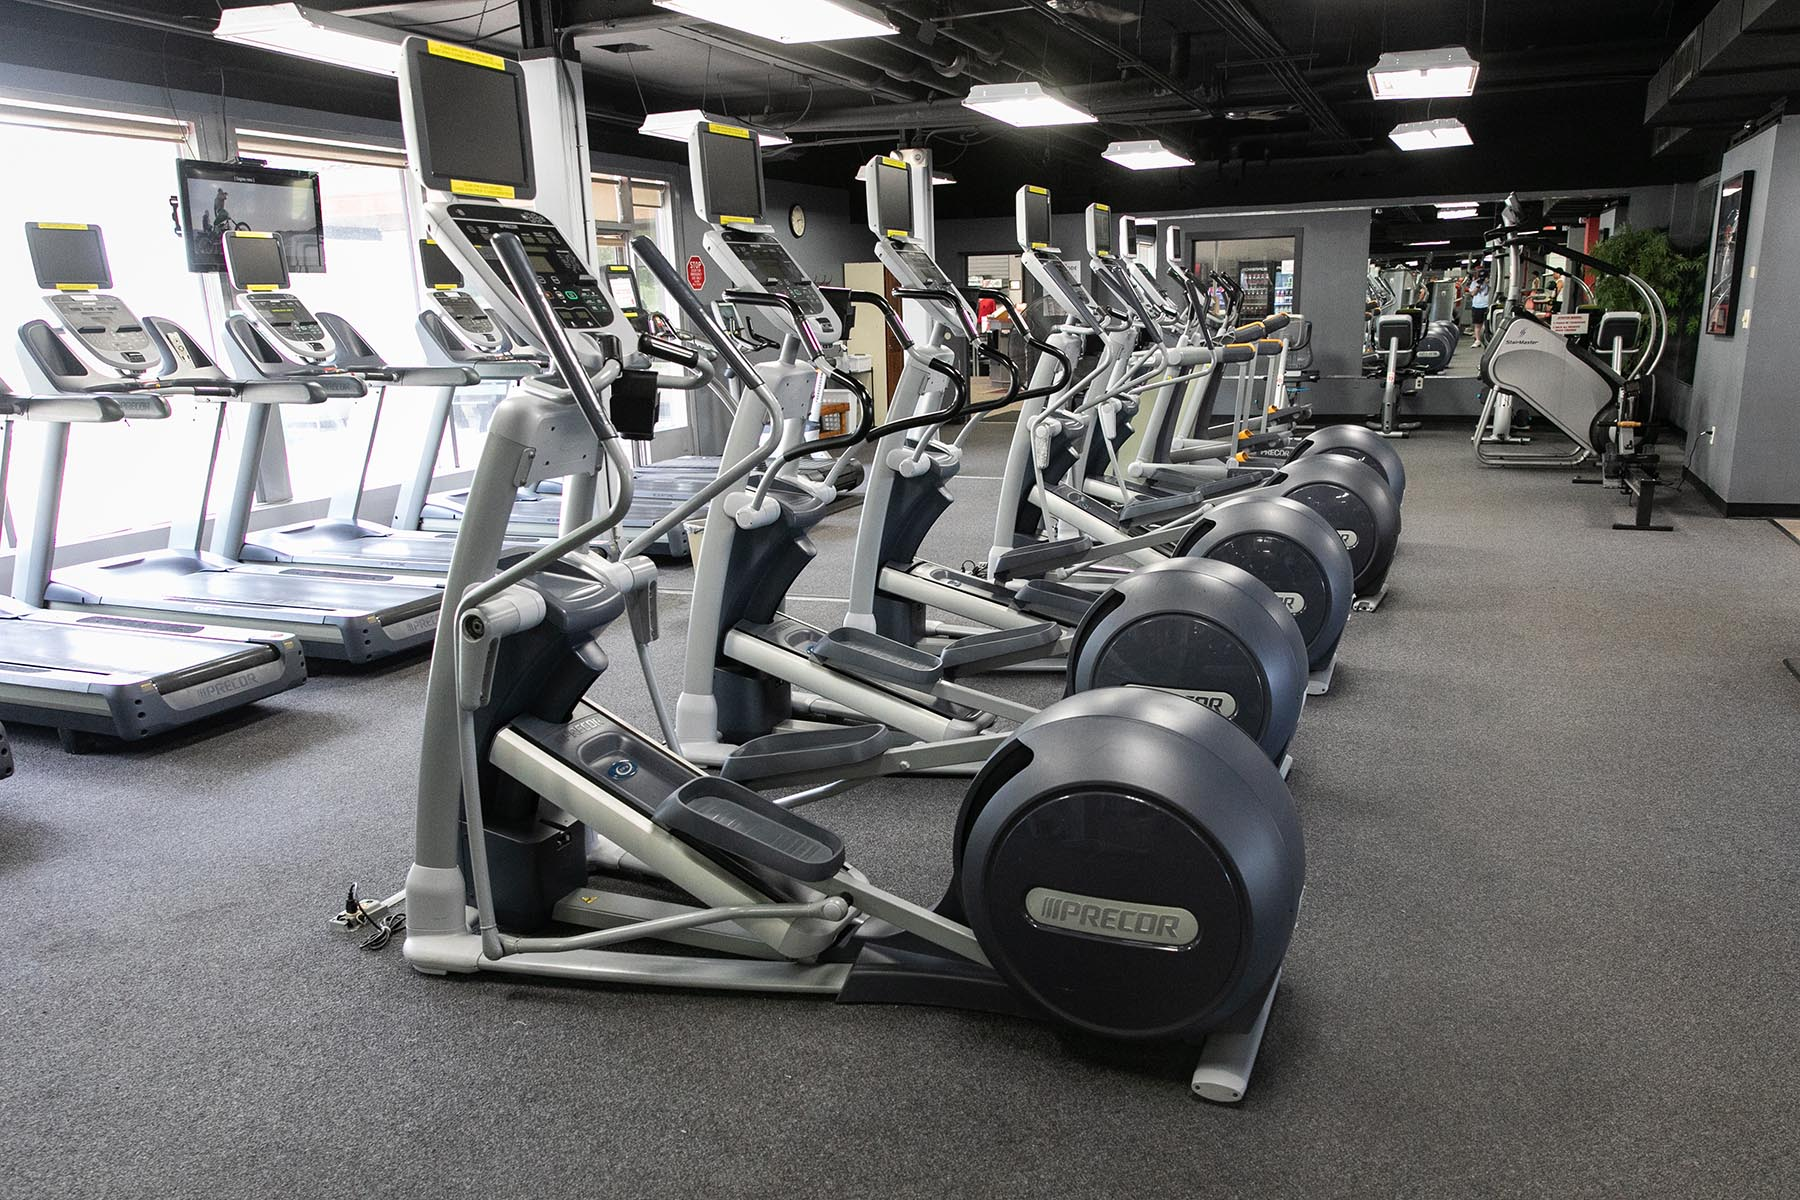 shawnee country club fitness center